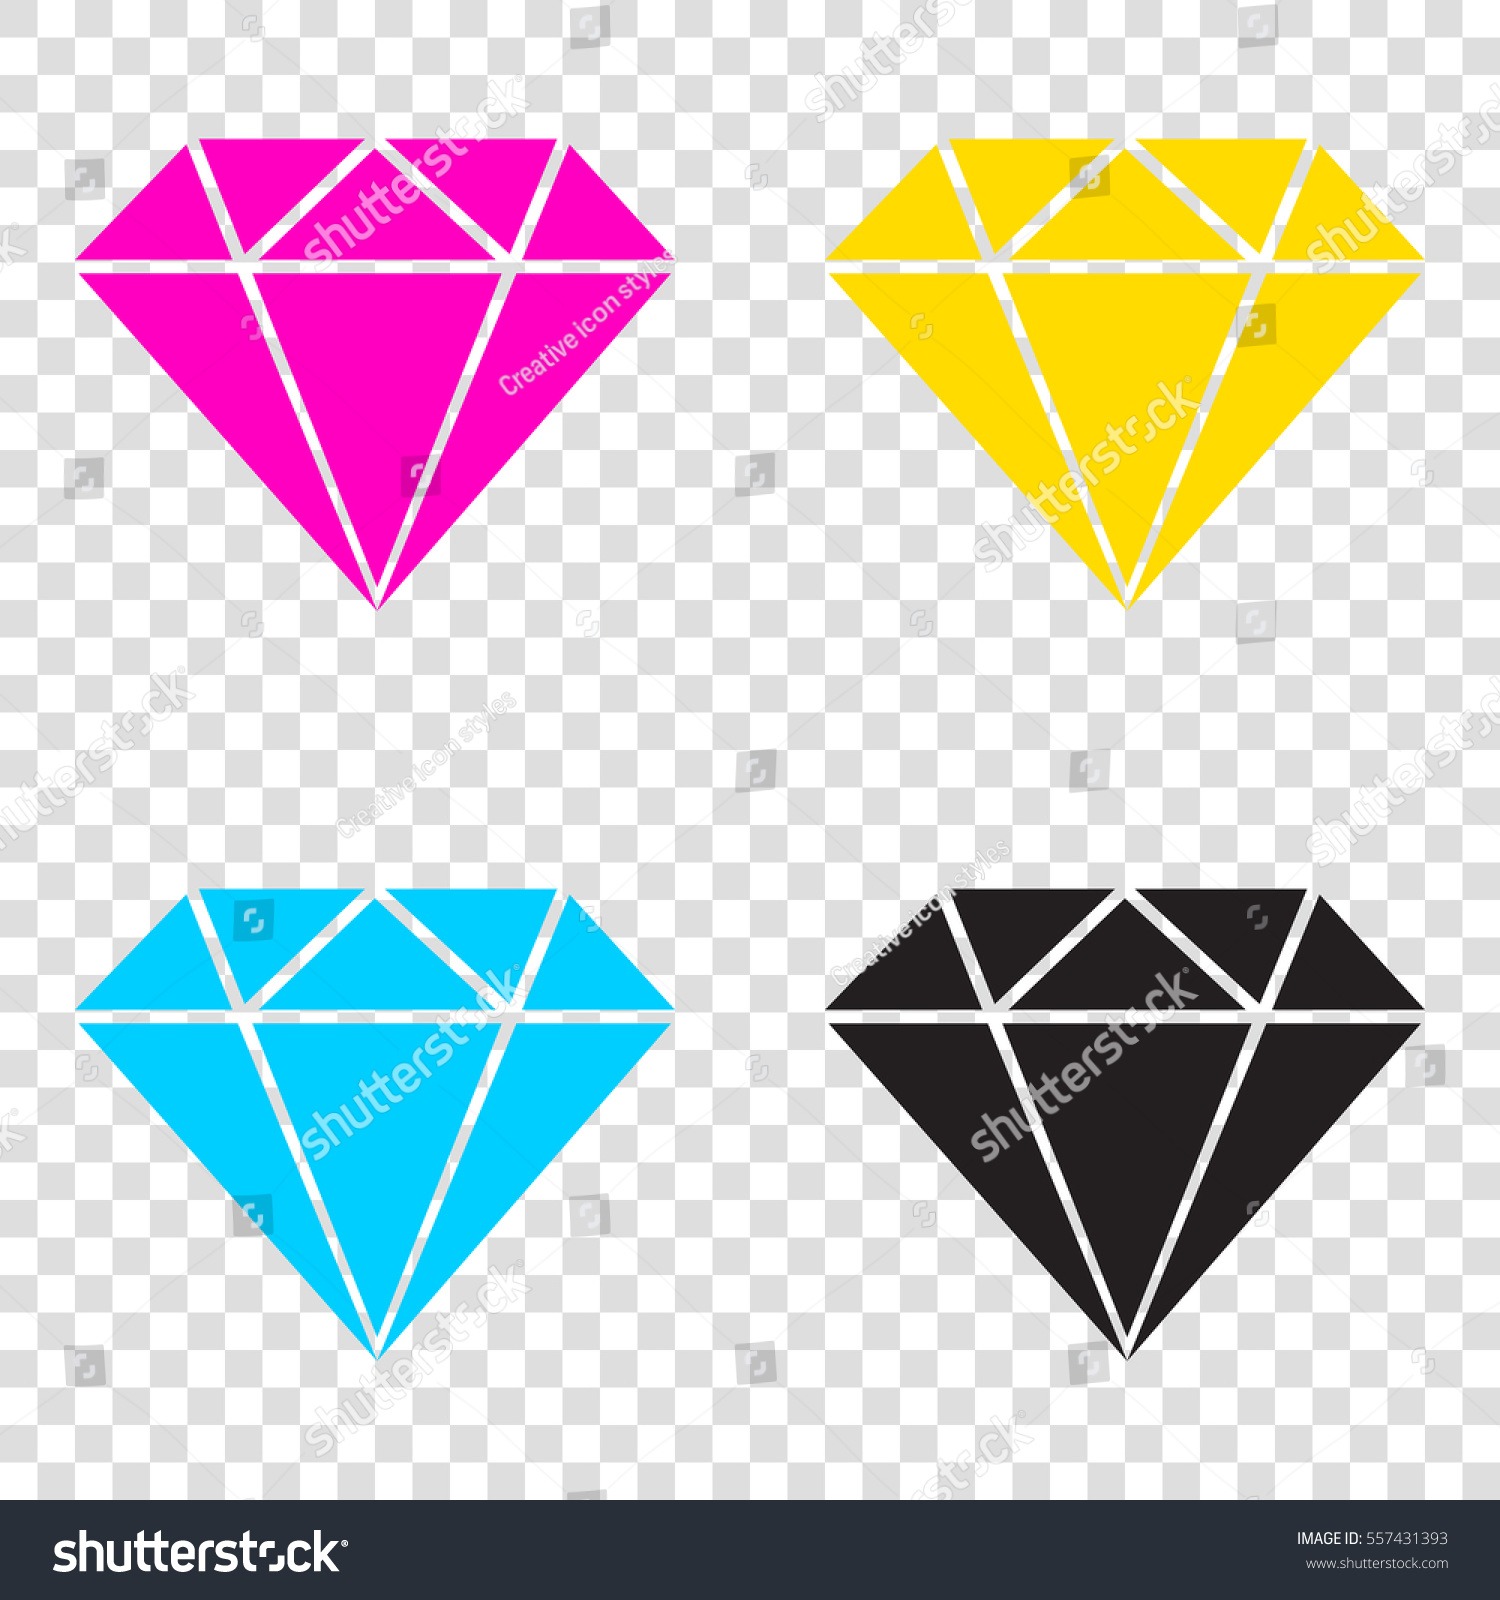 a7ca62088180 Diamond Sign Illustration CMYK Icons On Stock Vector (Royalty Free ...